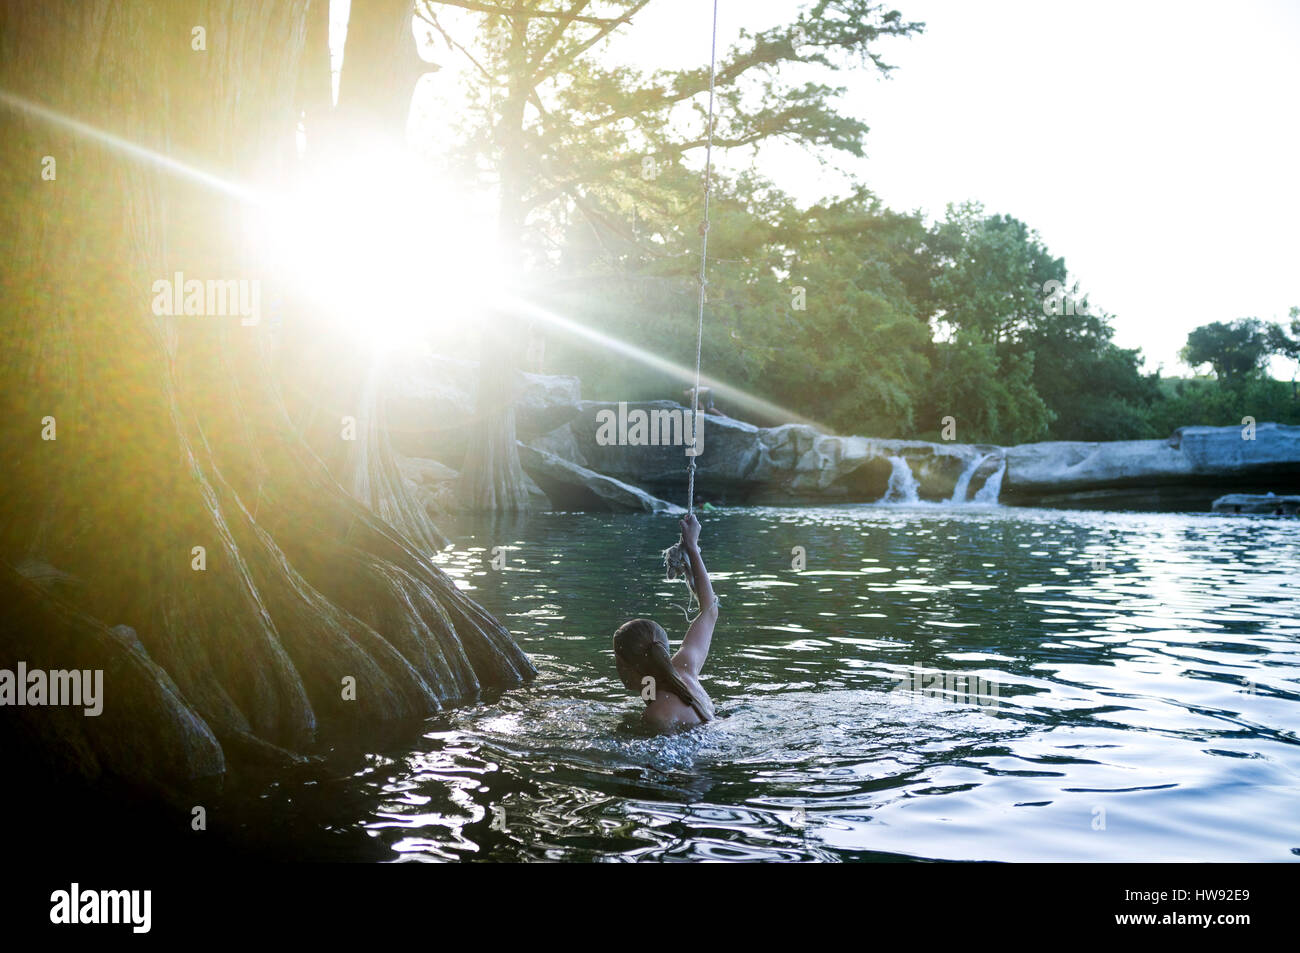 Rope swing at McKinney Falls in Texas - Stock Image